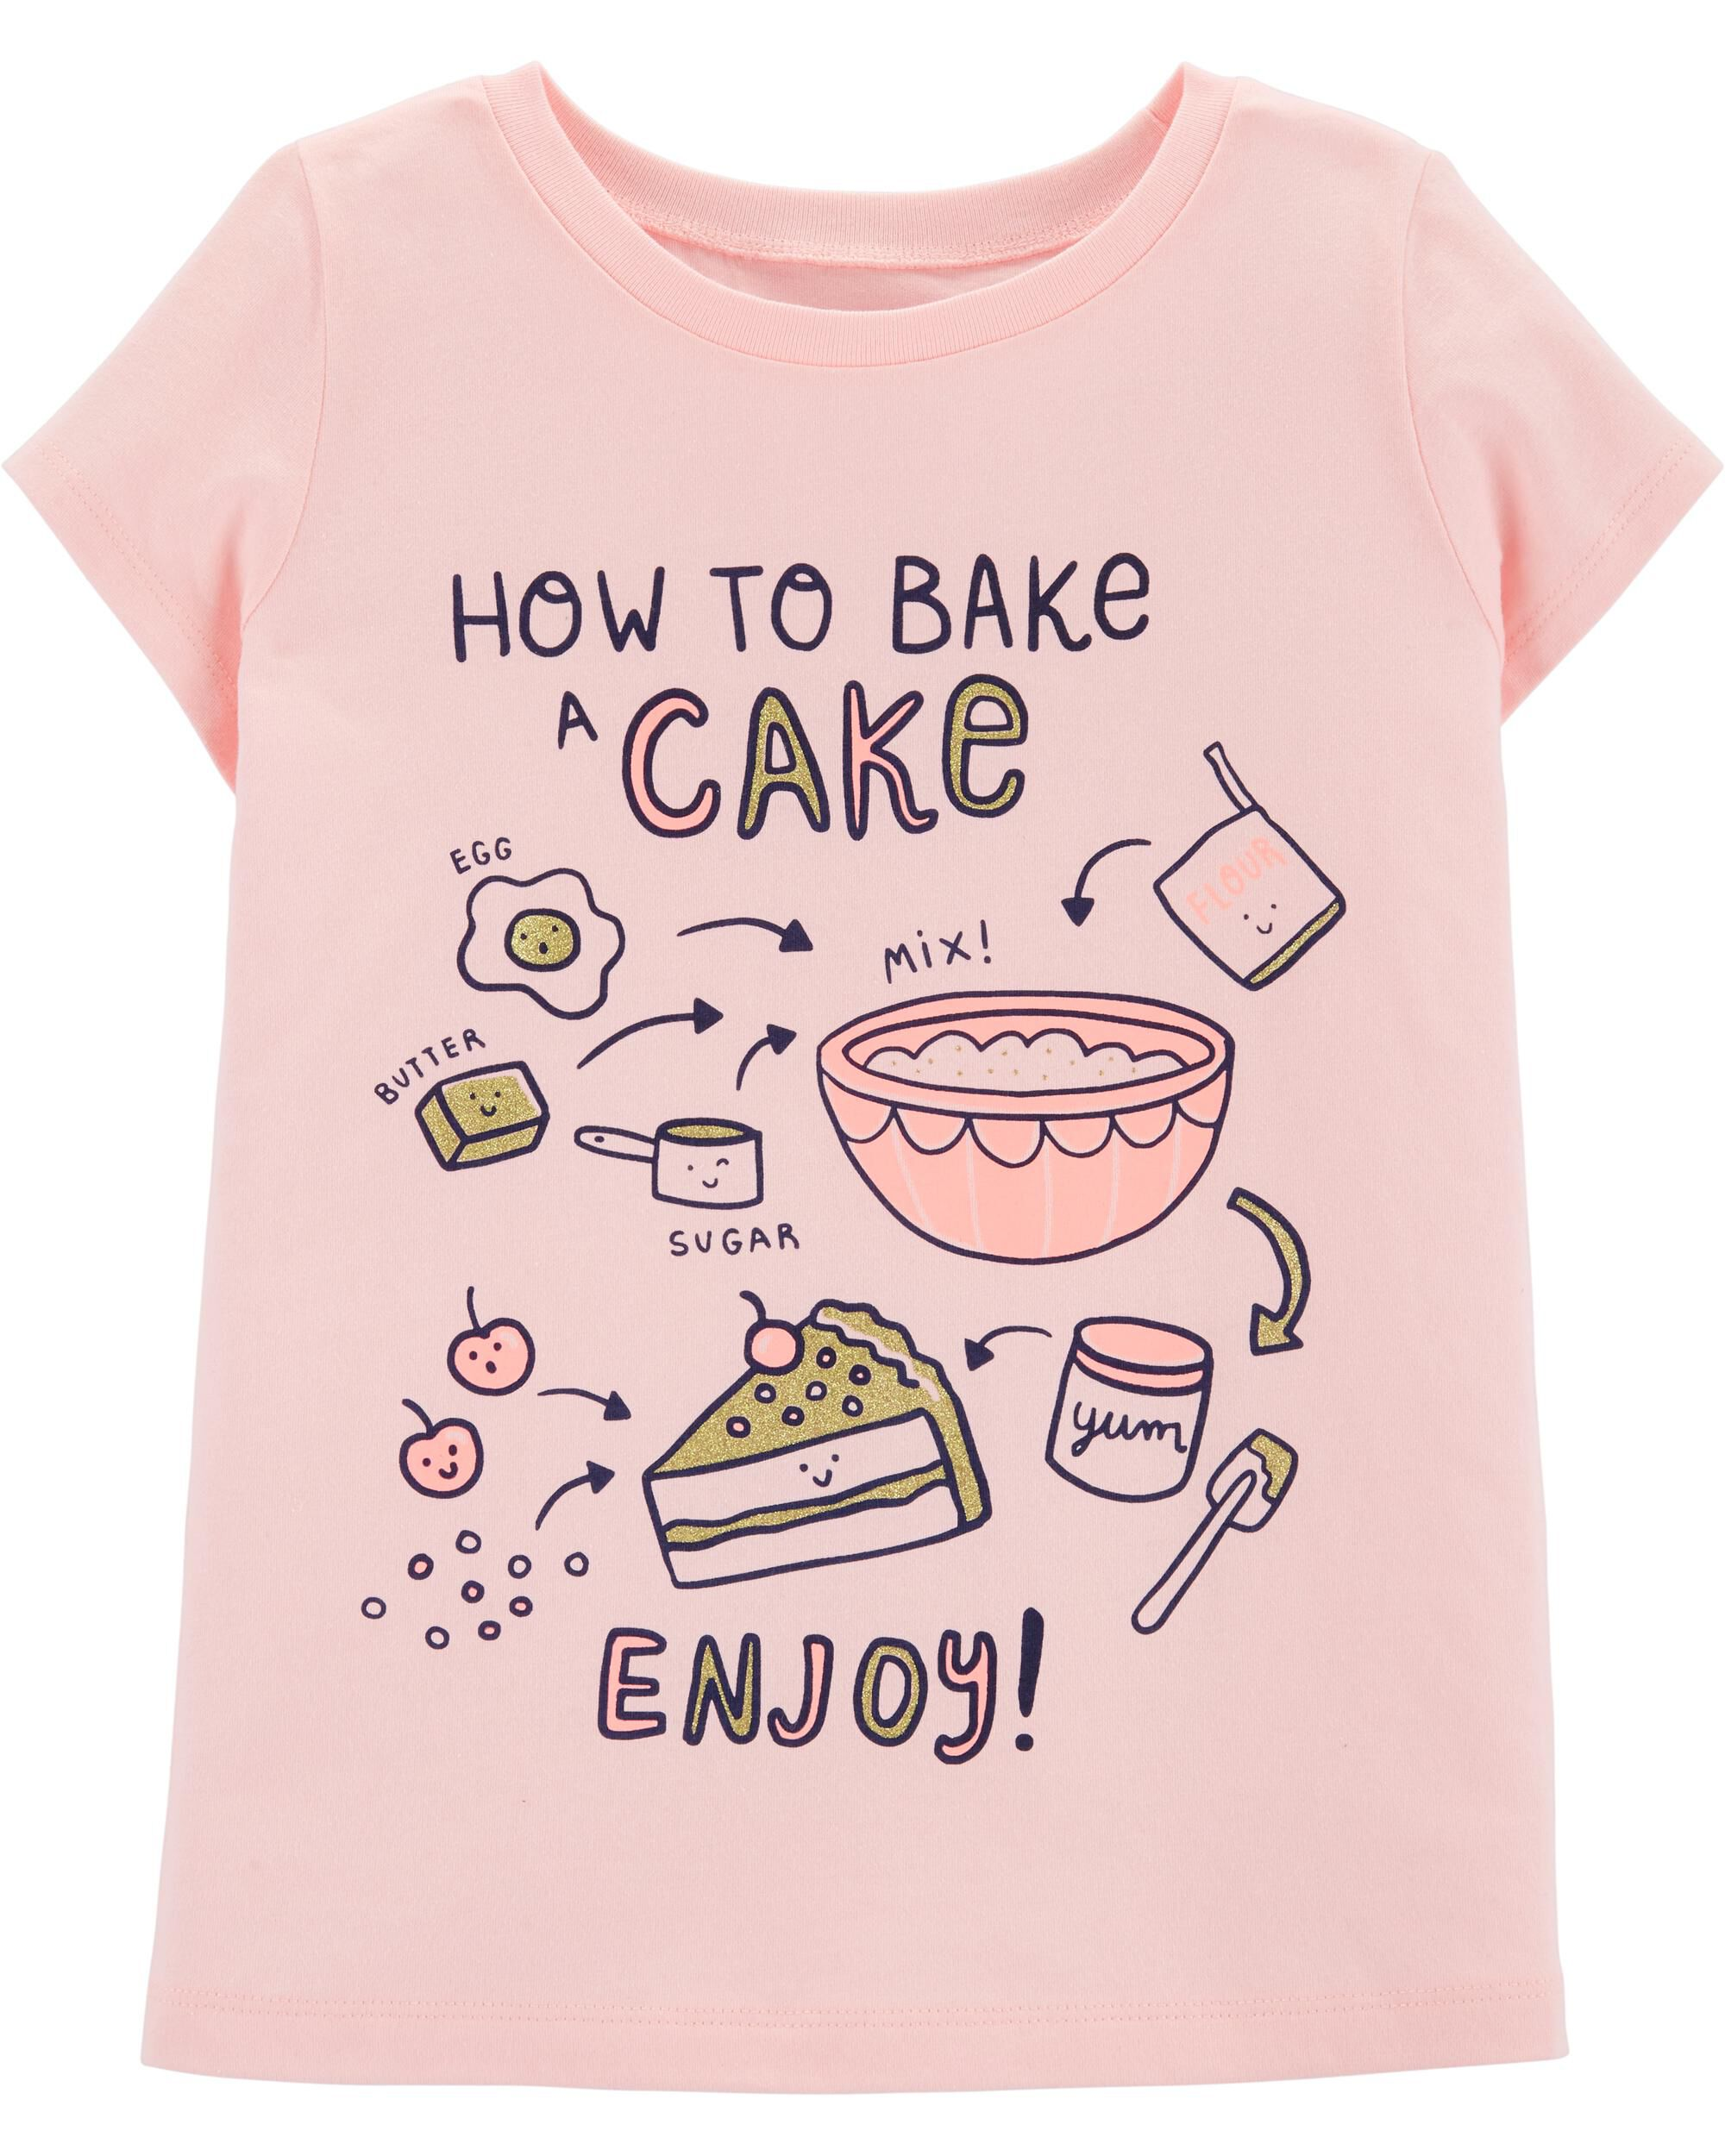 *DOORBUSTER*Glitter How To Bake A Cake Jersey Tee